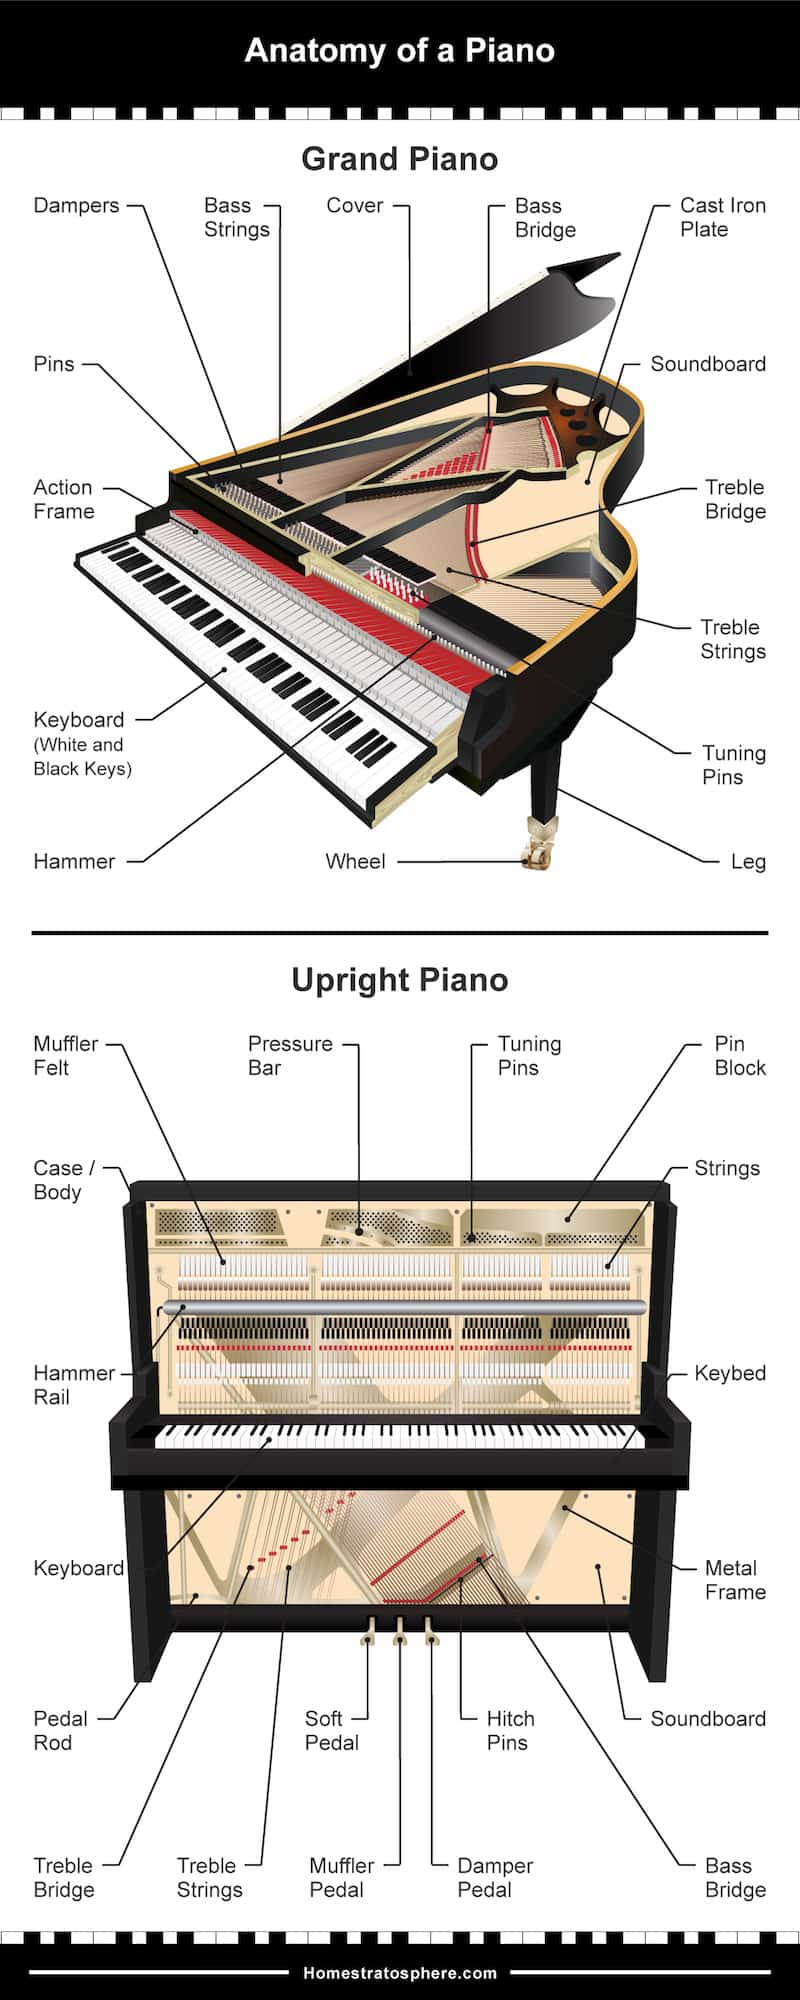 Anatomy of a Piano Infographic